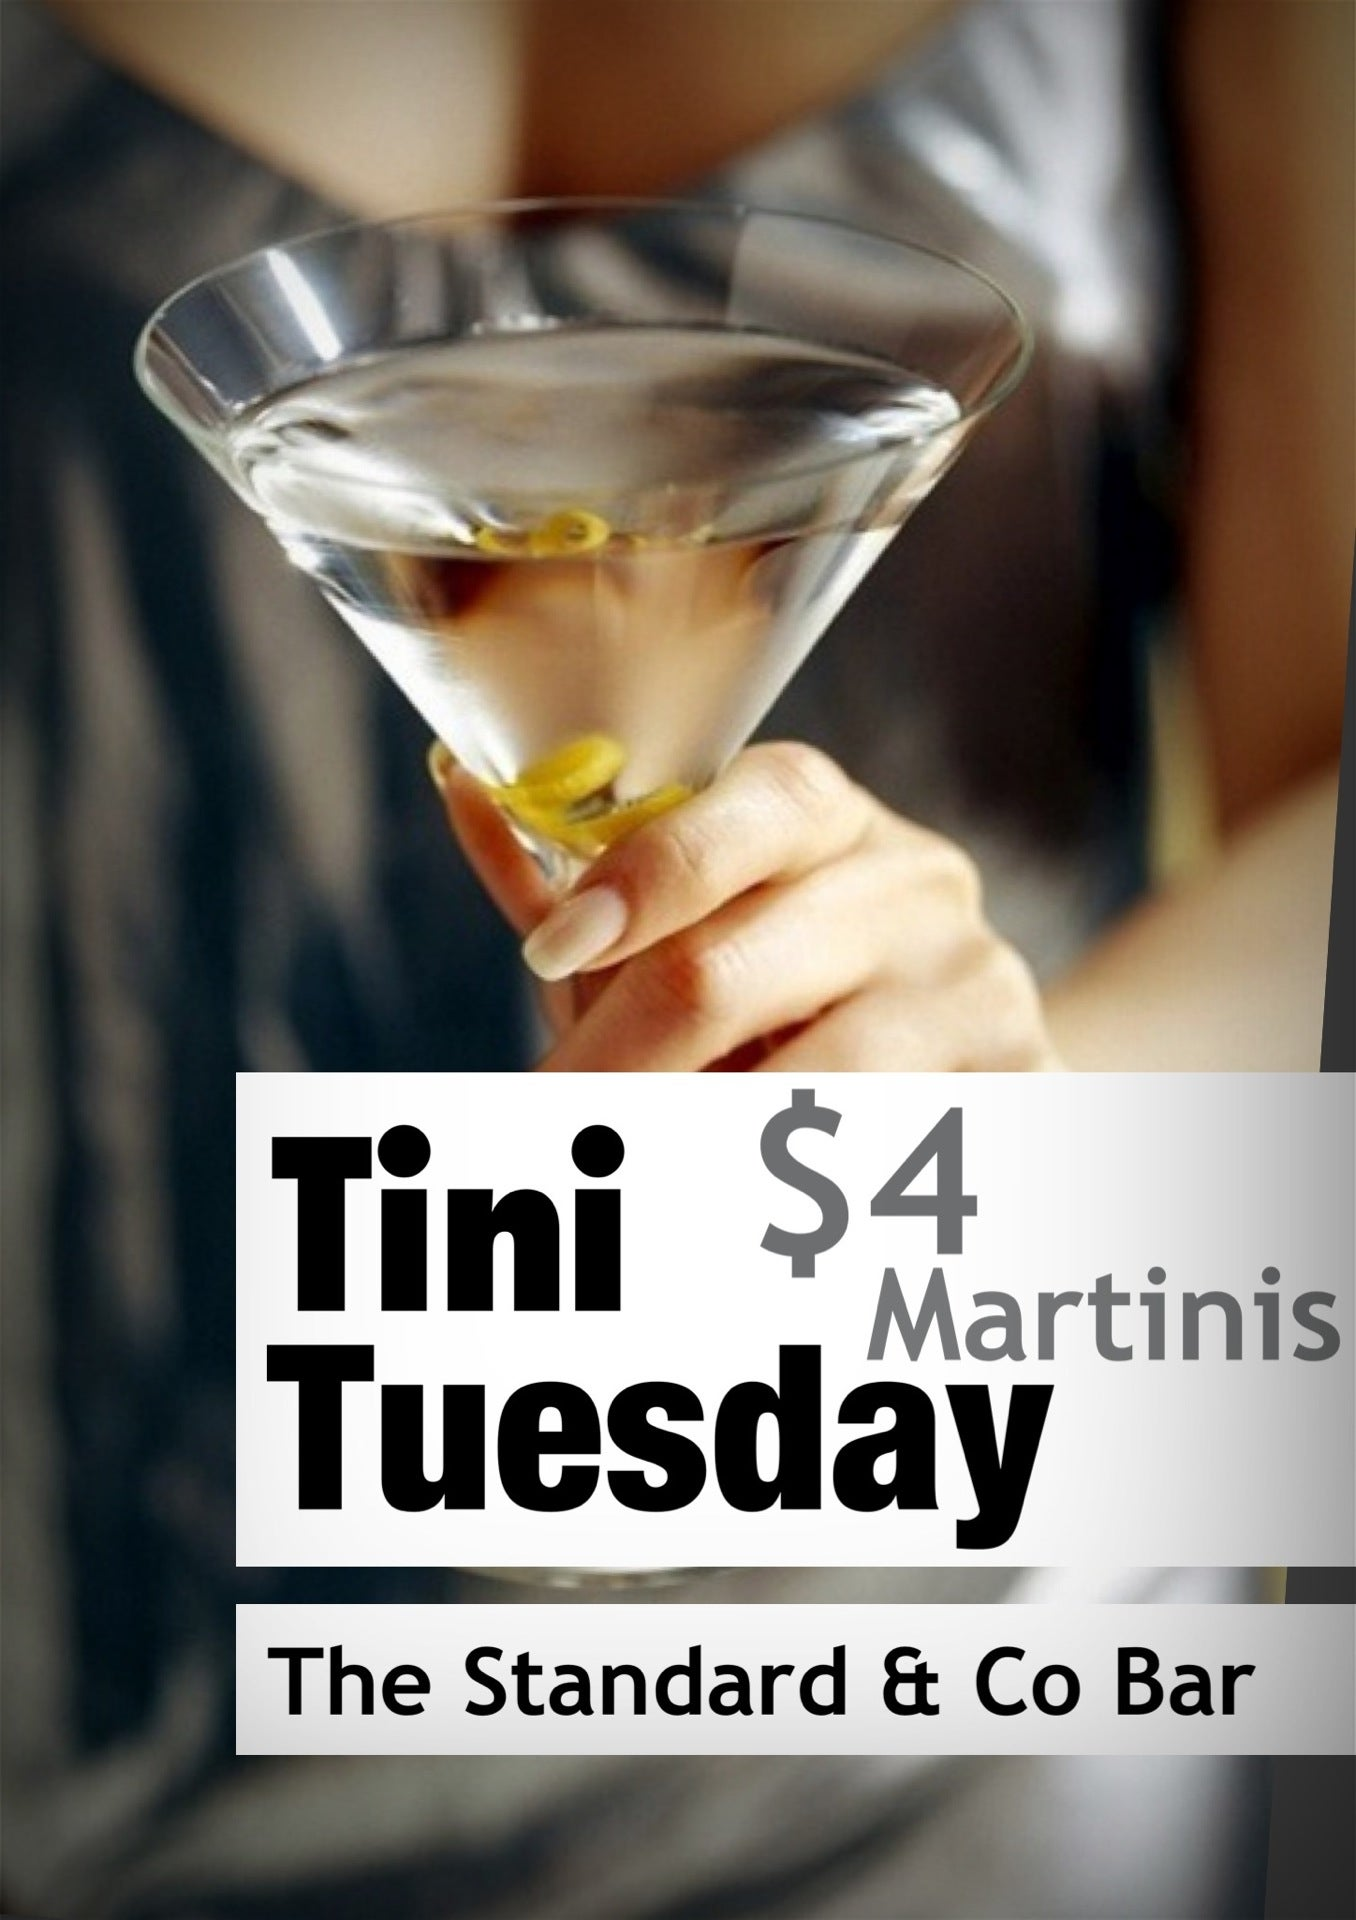 TOP HAT CLUB,martinis